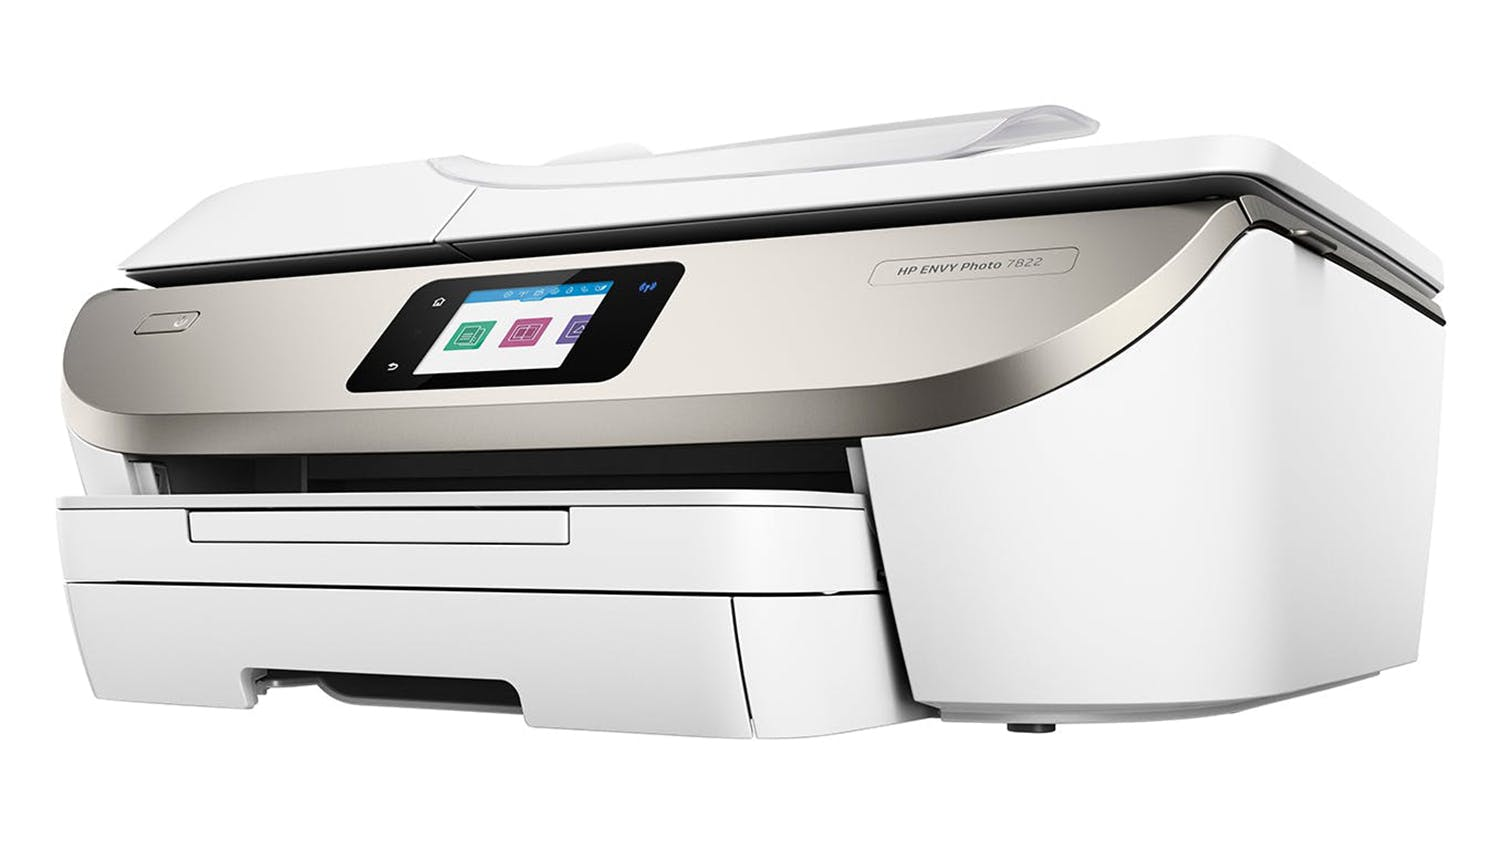 HP Envy Photo 7822 All-in-One Printer